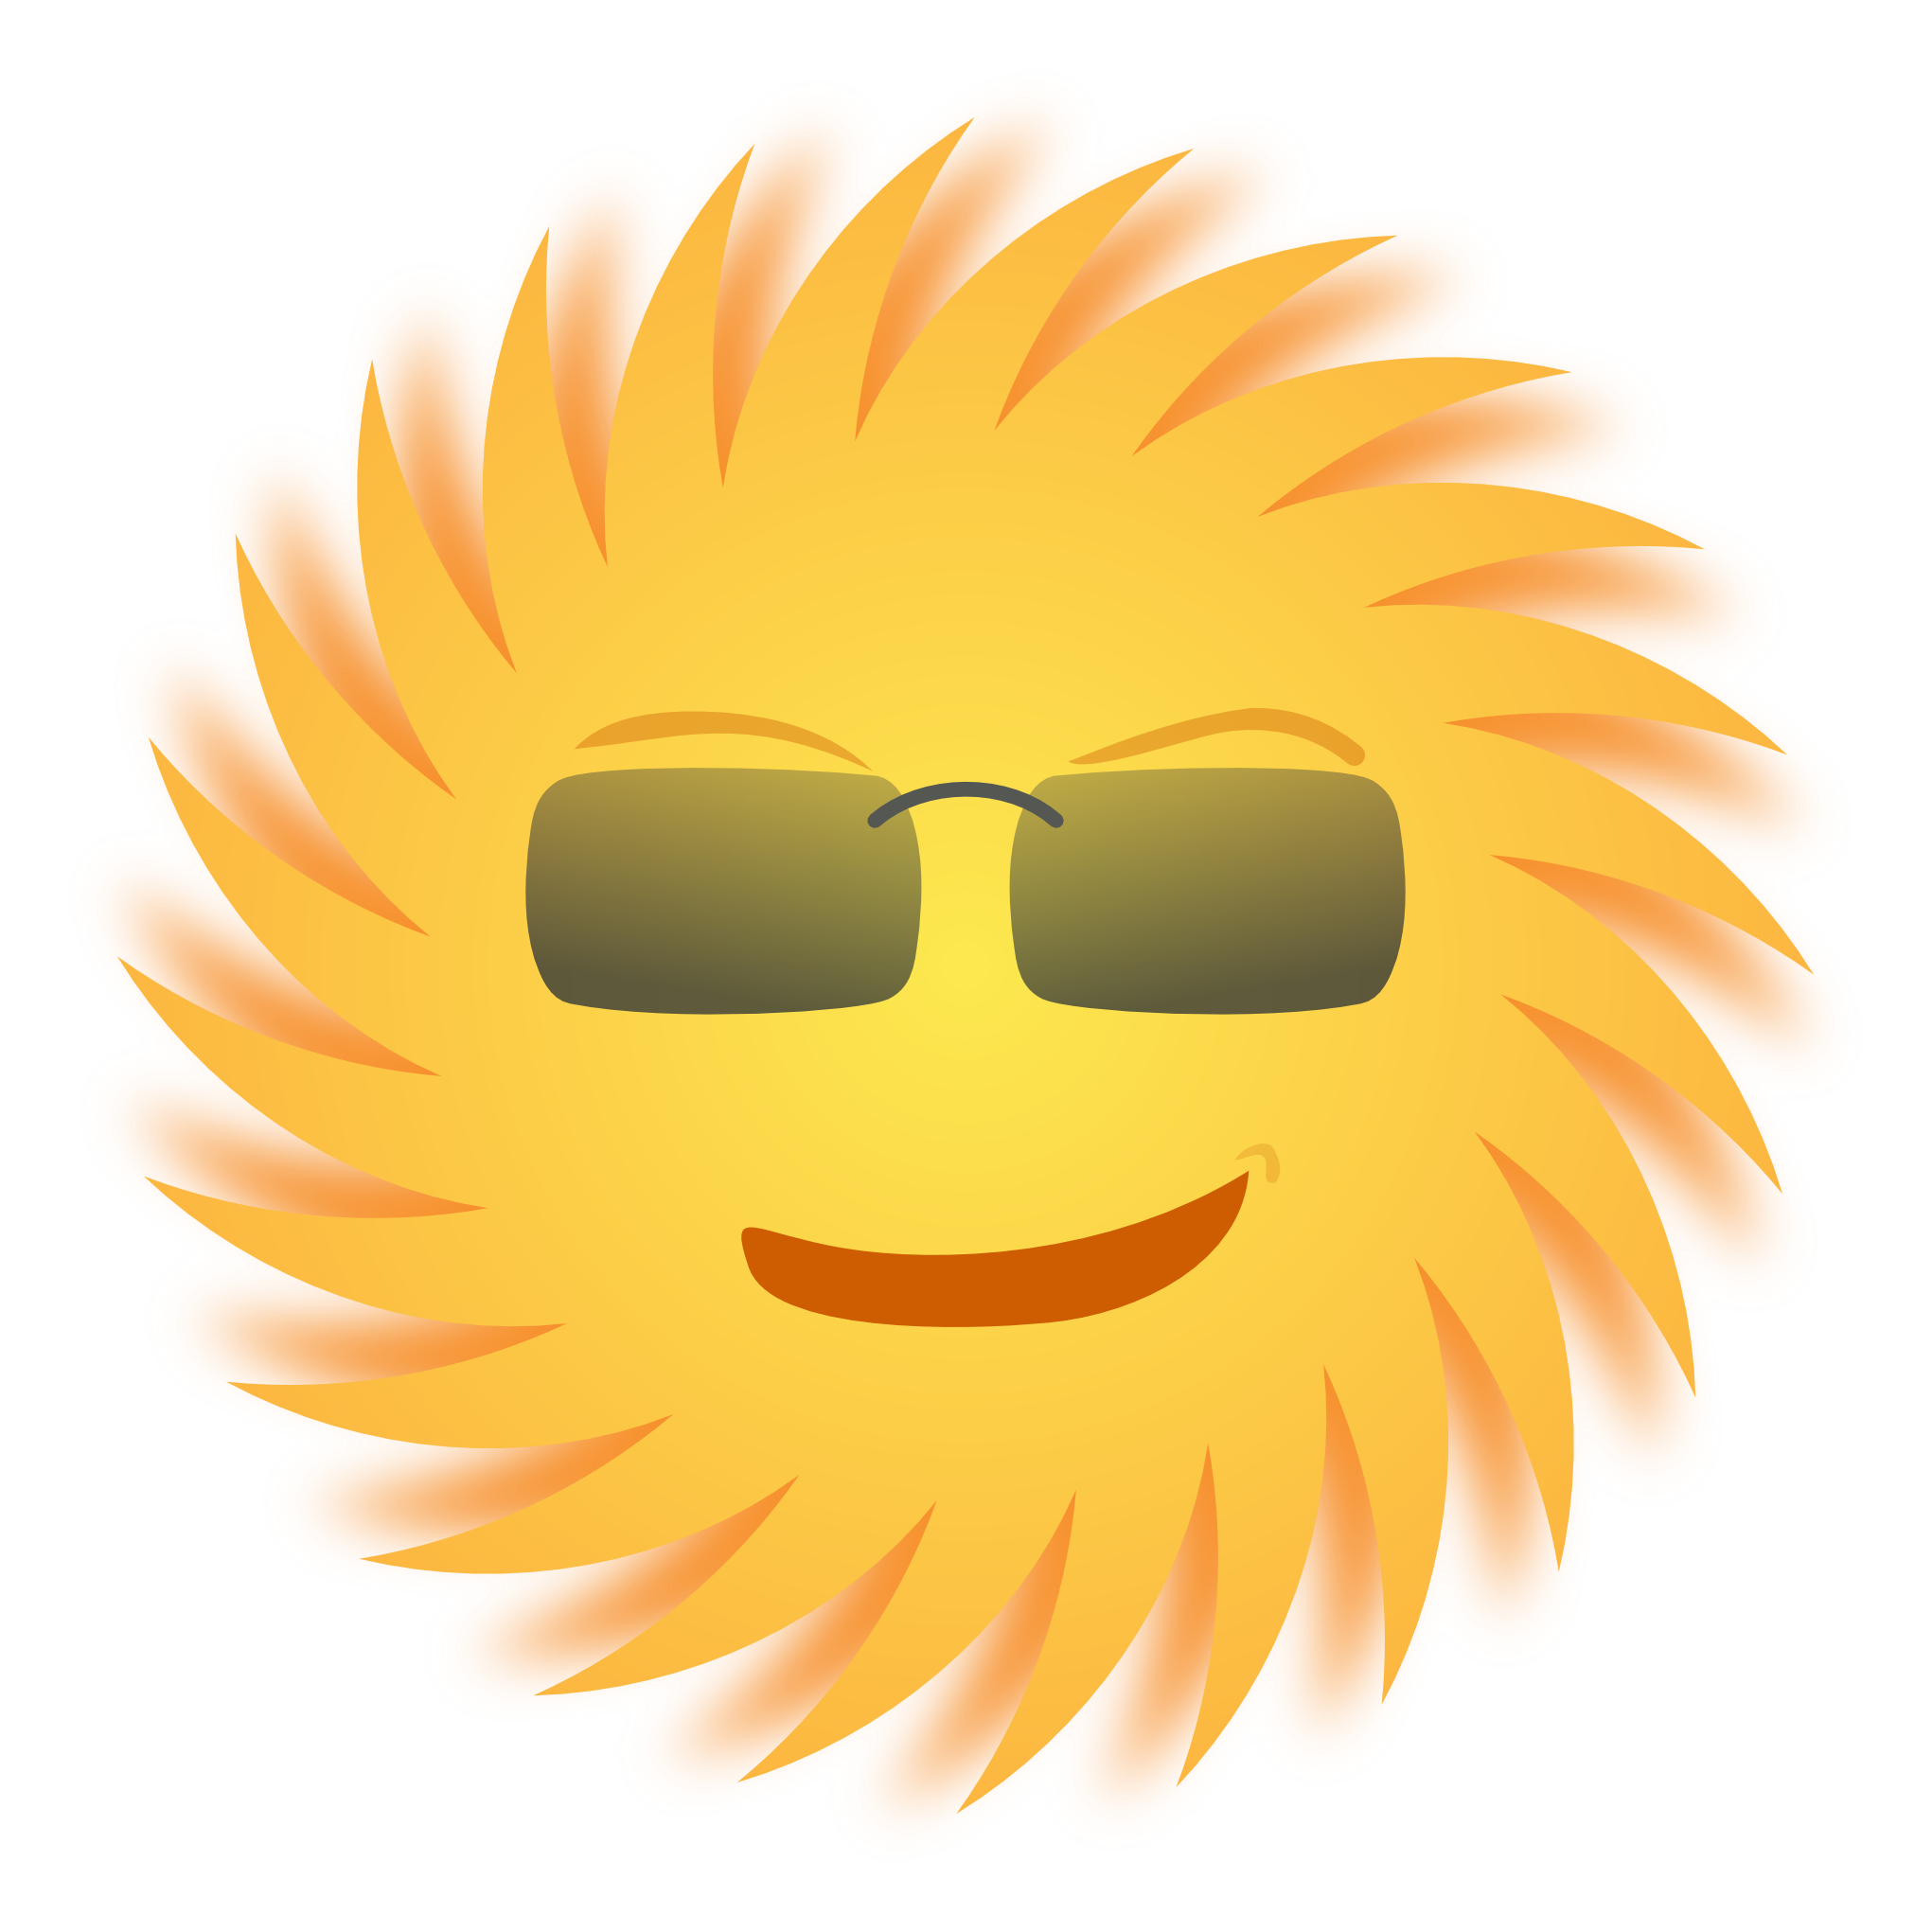 Sun with sunglasses clipart free whitout background clipart library Sun PNG Image - PurePNG | Free transparent CC0 PNG Image Library clipart library